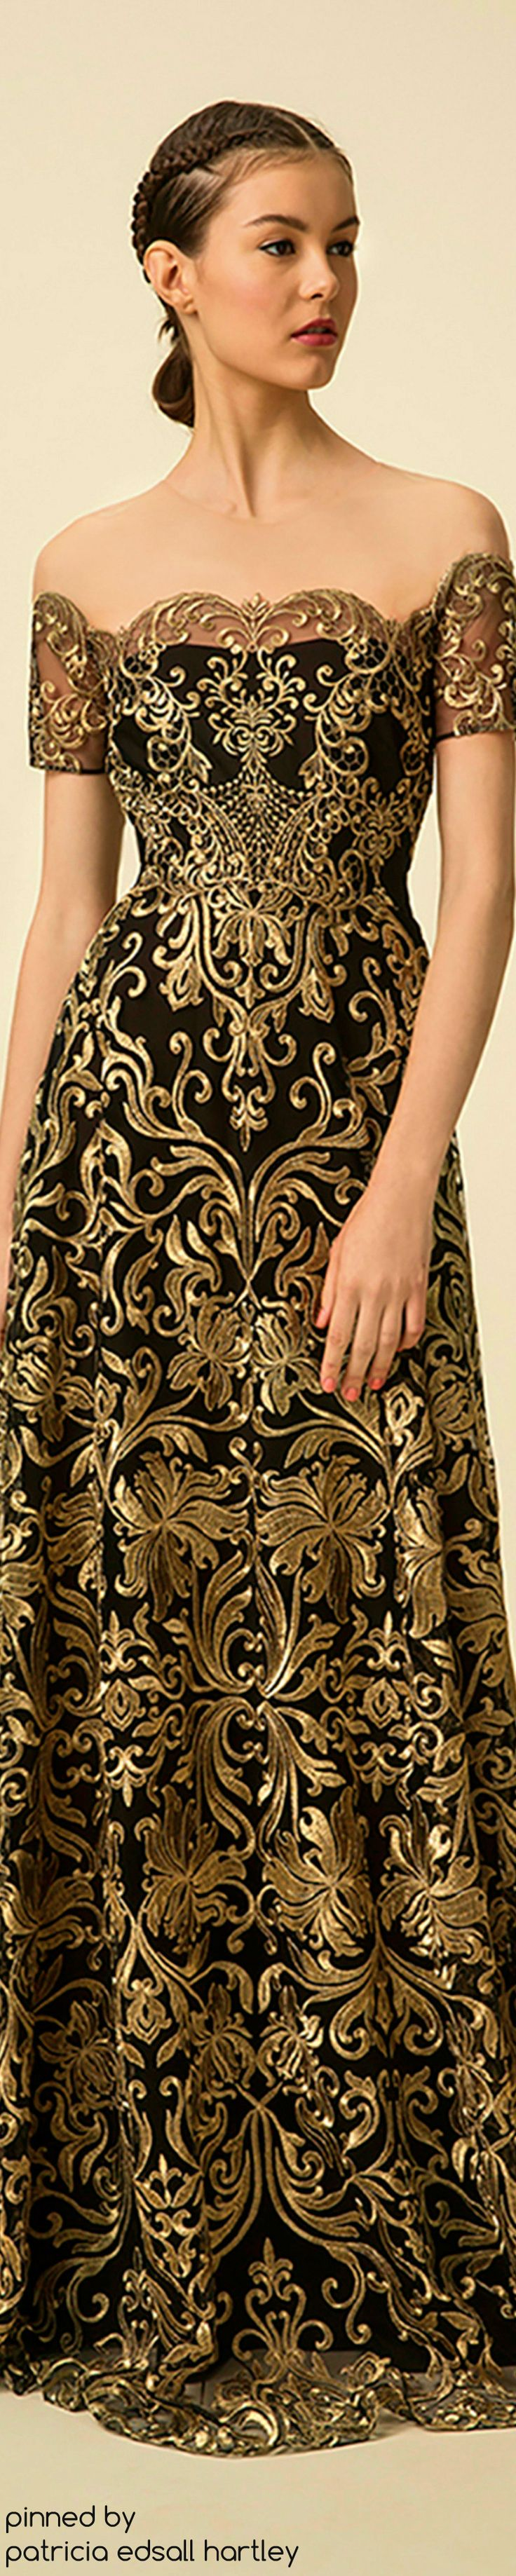 SPRING 2016 READY-TO-WEAR Marchesa Notte